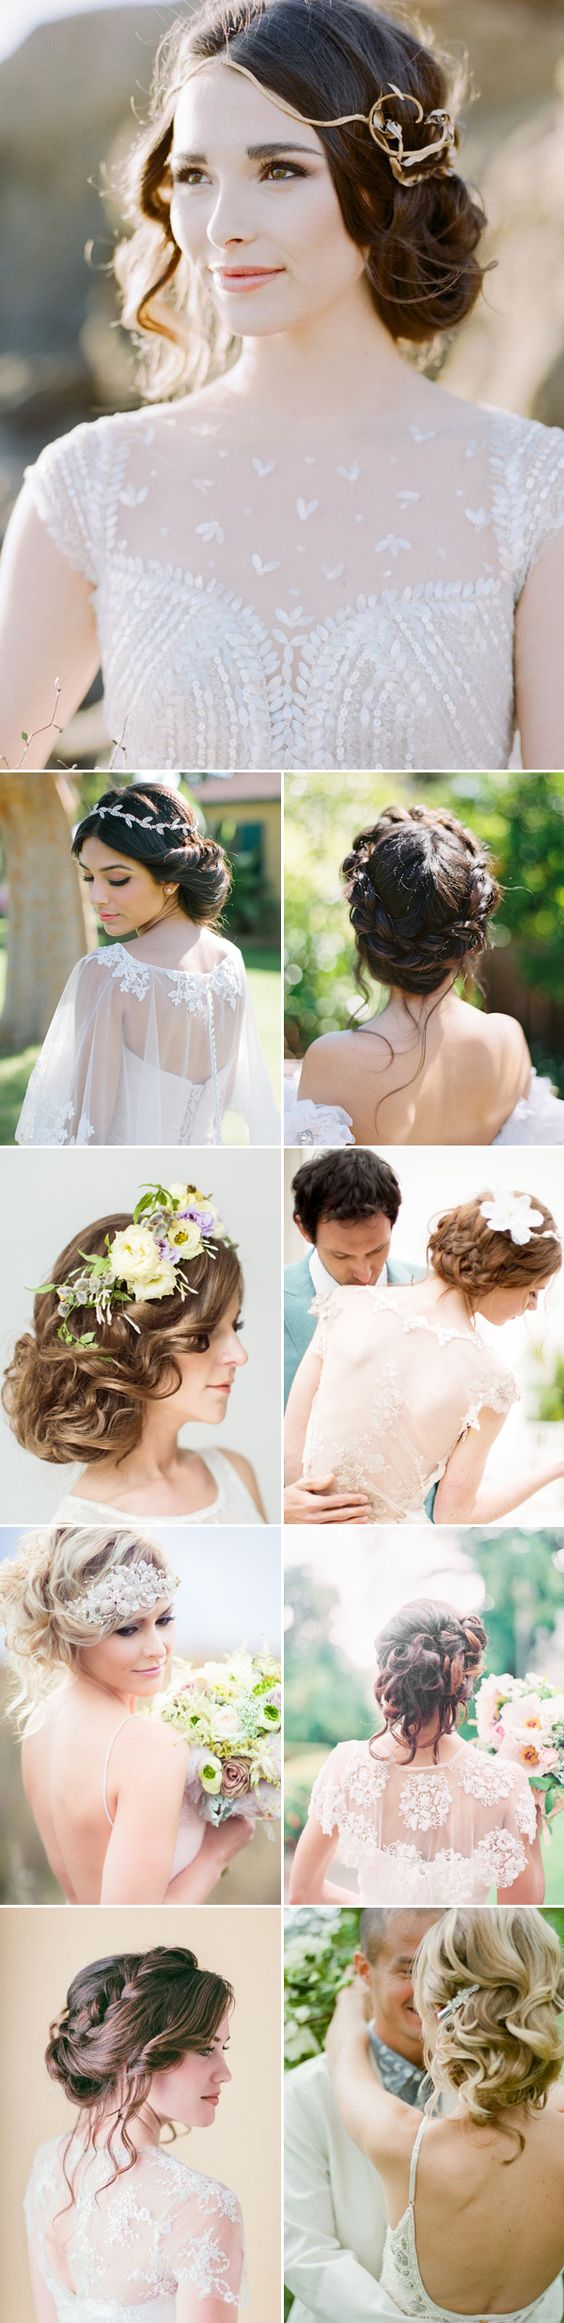 Pin by Alyssa Bailey Ewen on My Style | Pinterest | Romantic bridal ...